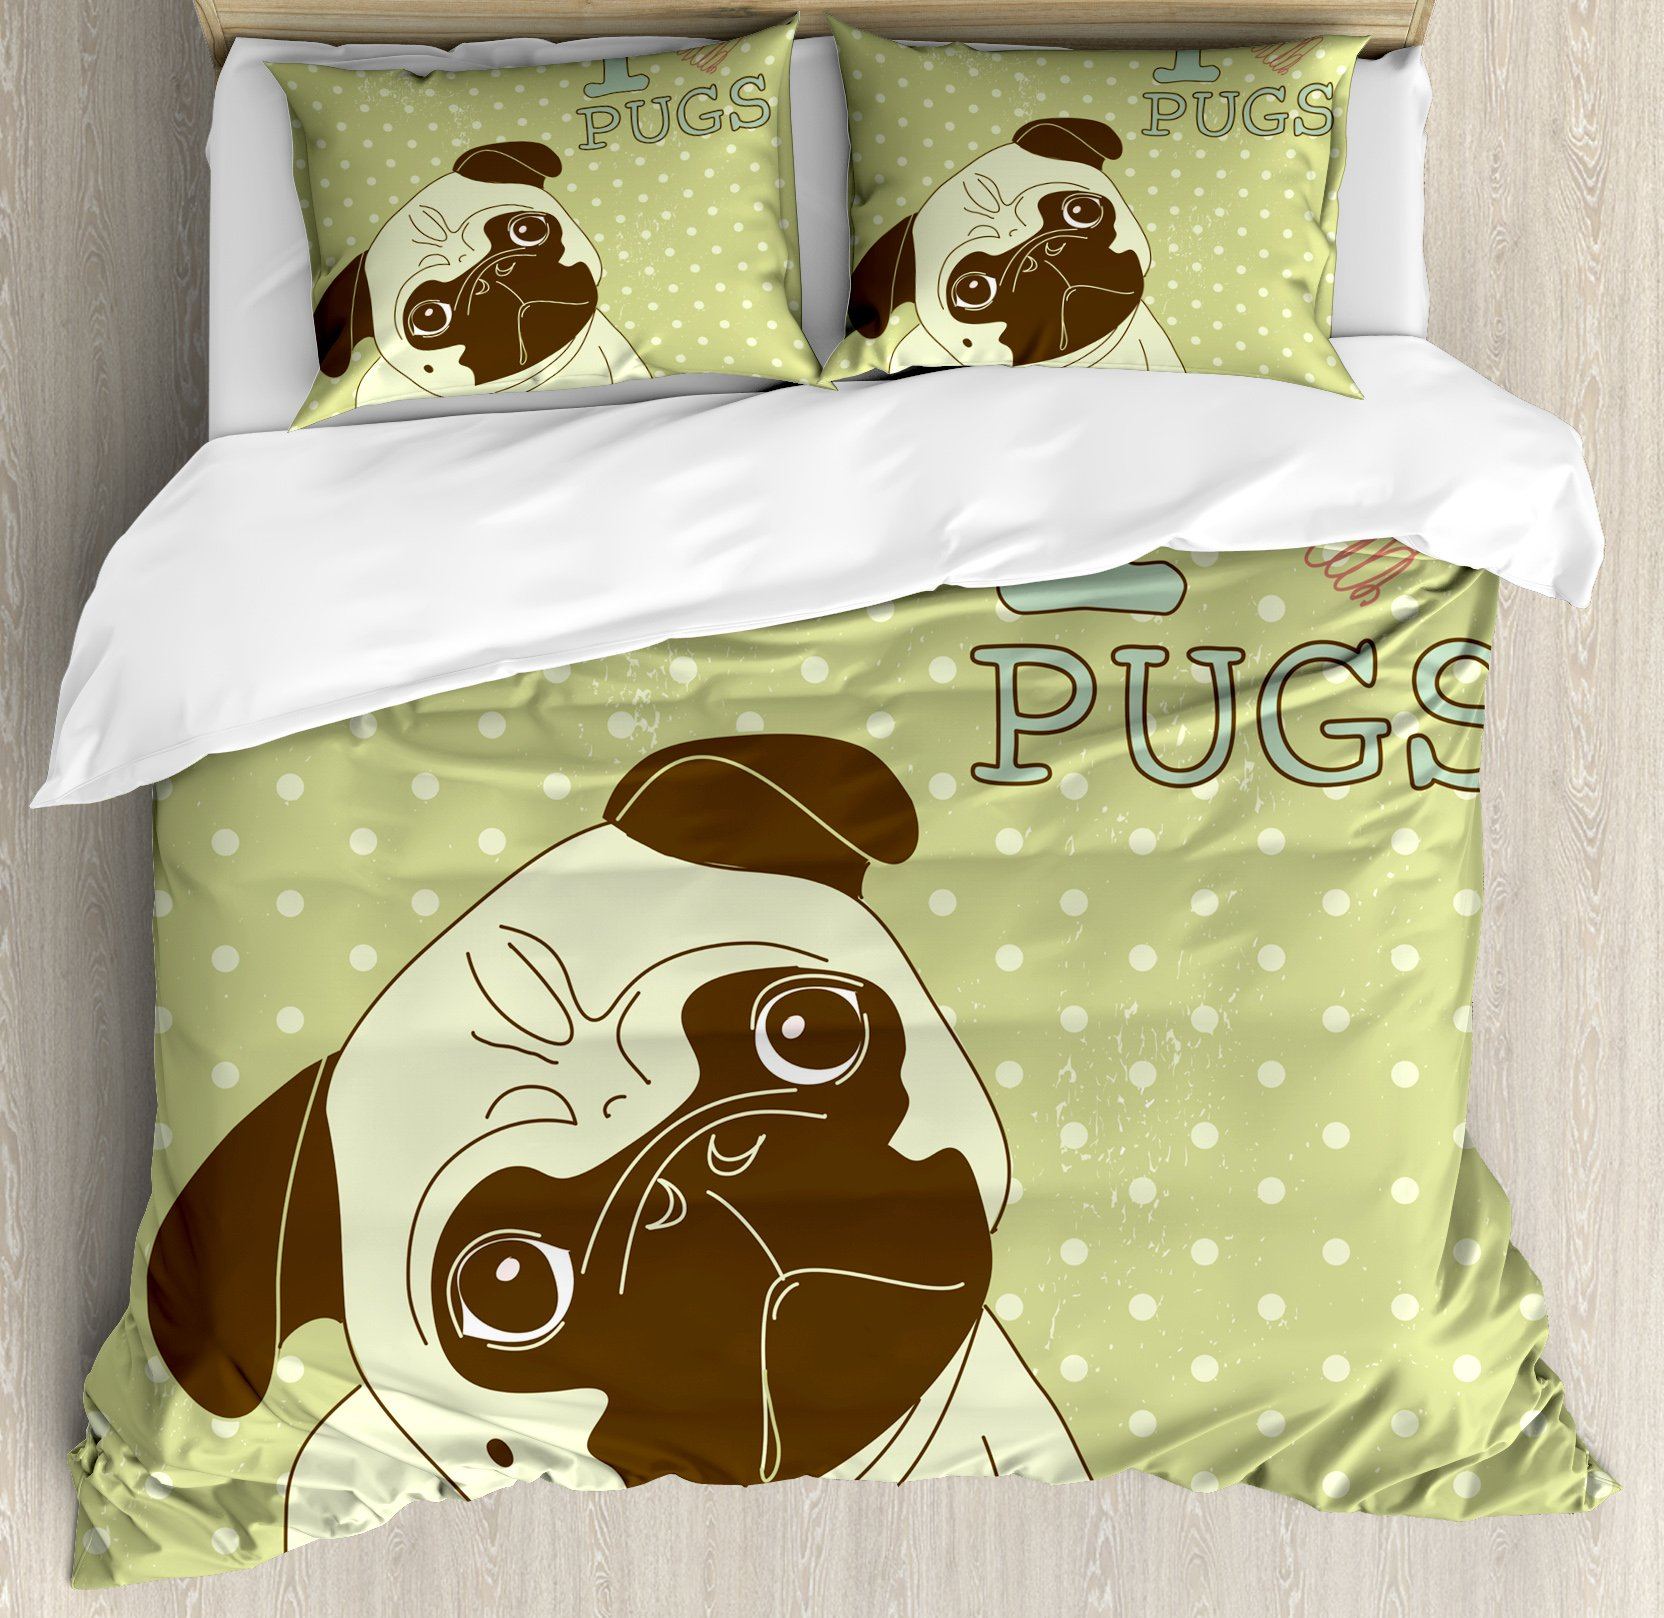 Pug Duvet Cover Set King Size by Ambesonne, Cute Little Dog with Tilted Head with Lovely Expression I Love Pugs Pet, Decorative 3 Piece Bedding Set with 2 Pillow Shams, Avocado Green Baby Blue